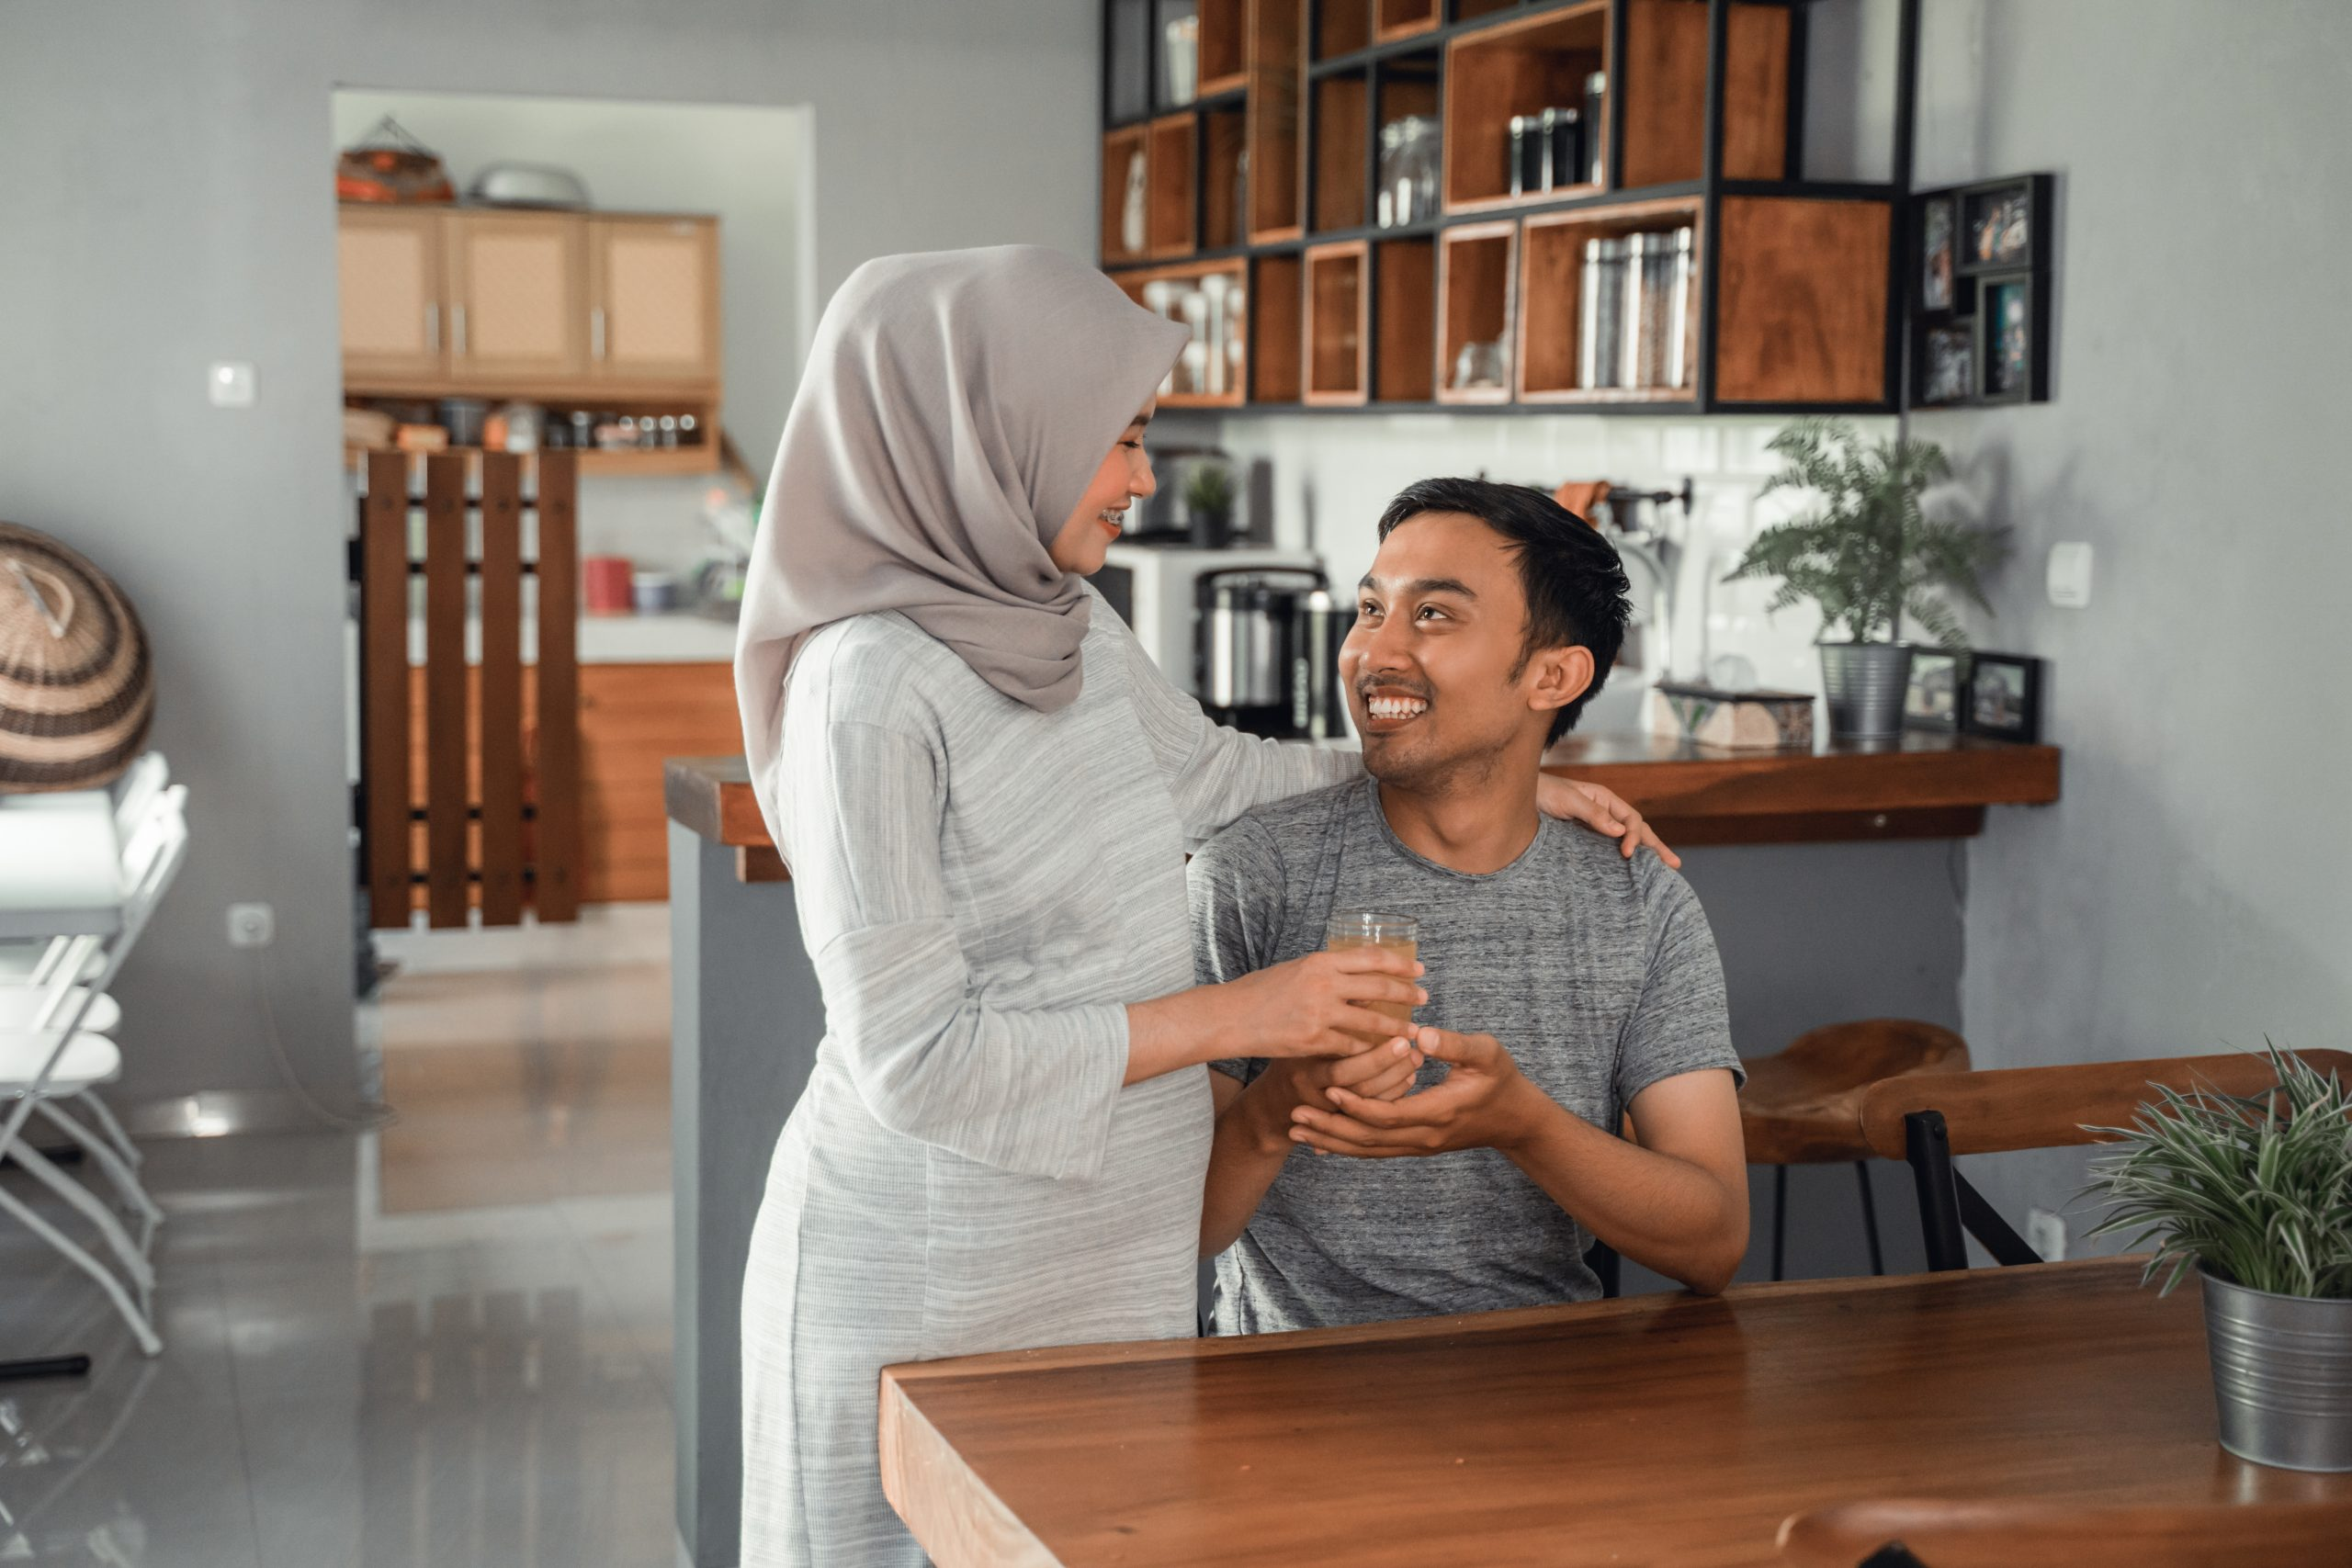 muslim-woman-served-her-husband-with-fruit-juice-scaled-1.jpg